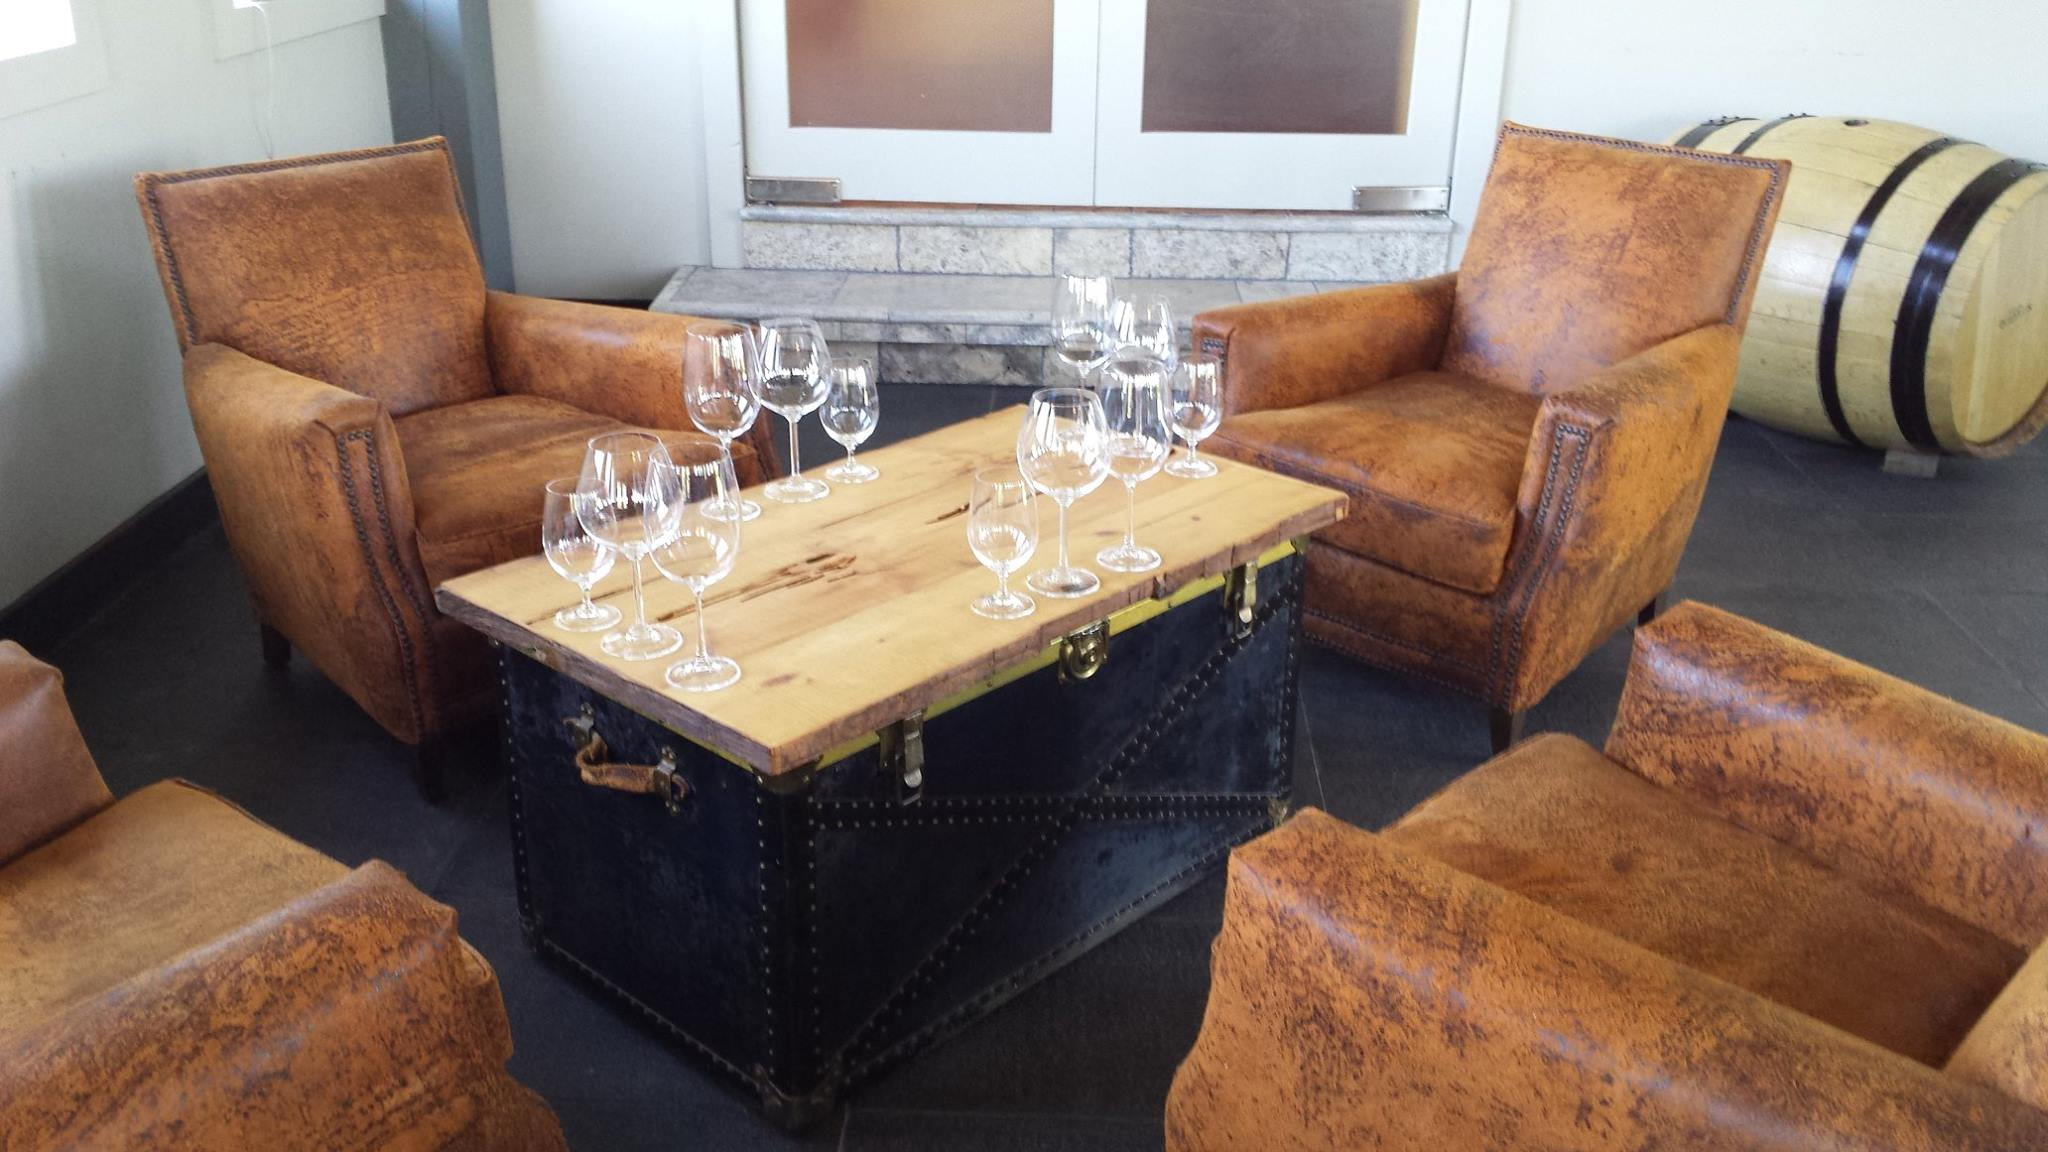 Get to Domaine Quaylus in a charter bus rental, and taste their wine offerings in their cozy tasting corner.